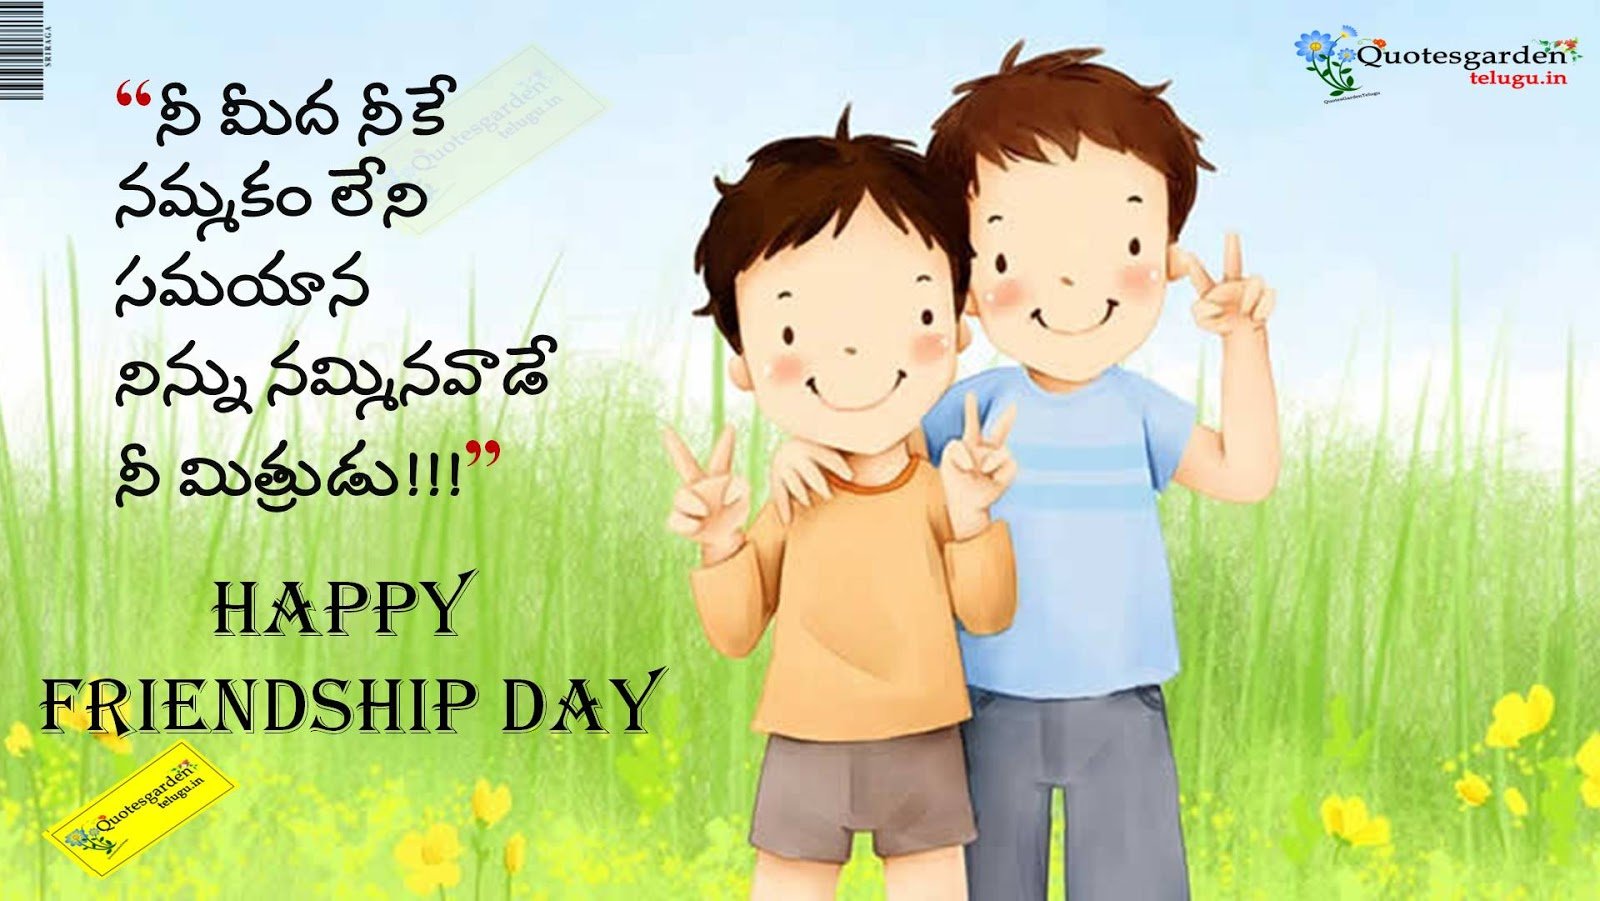 English Quotes About Friendship Friendship Day Telugu Quotes Wishes Greetings Images Friendship